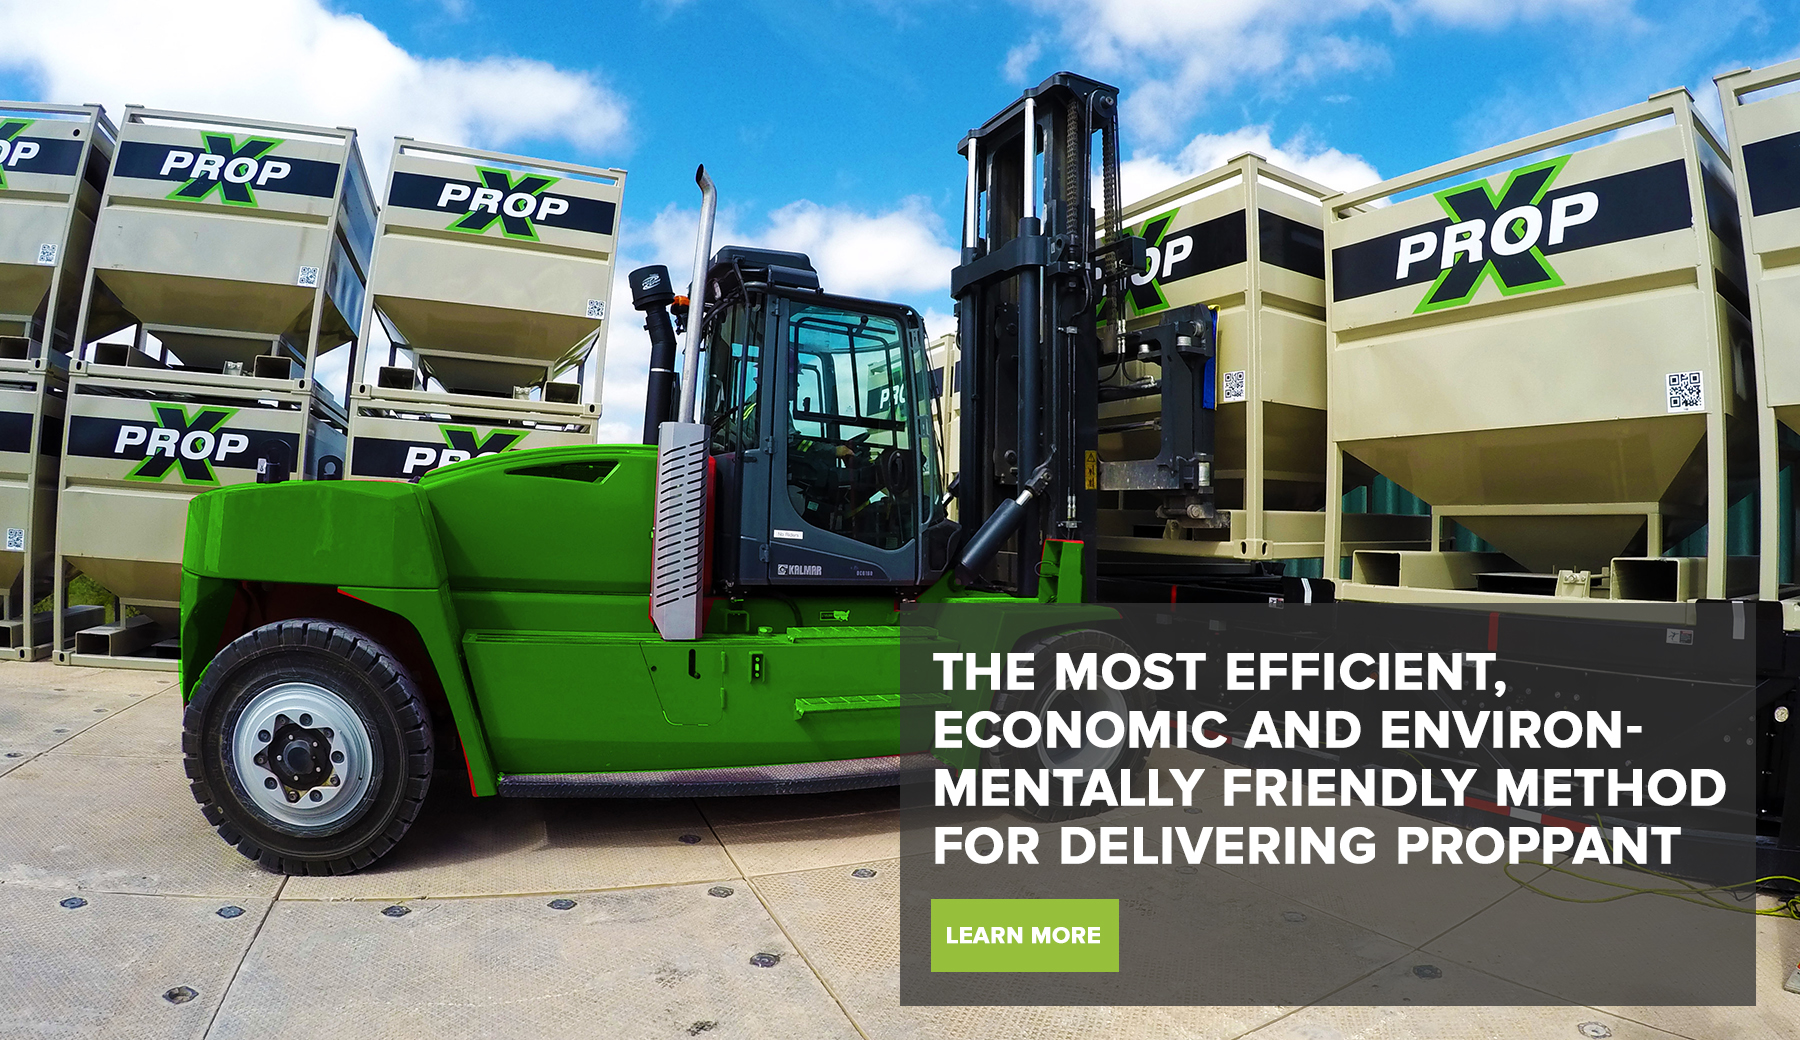 The Most Efficient, Economic and Environmentally Friendly Method For Delivering Proppant